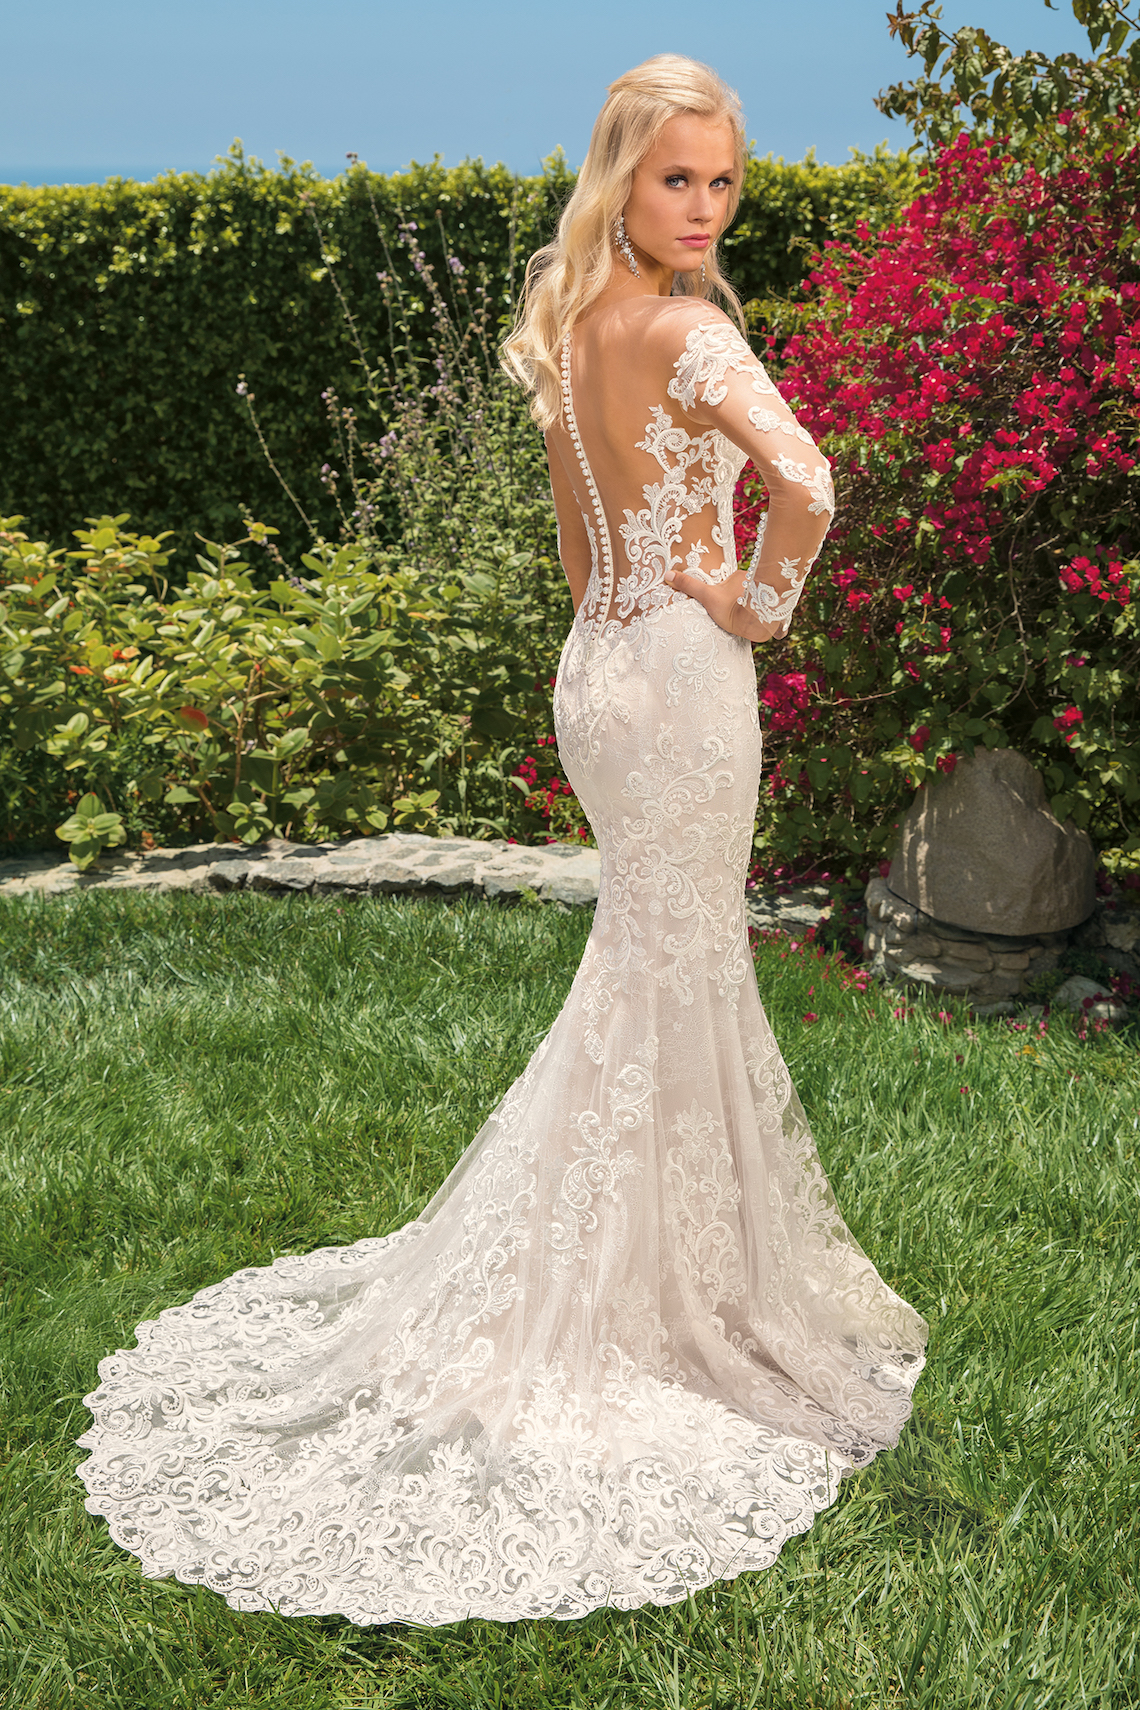 6 Stunning Lace Wedding Dresses By Casablanca Bridal – 2356 Madelyn-BACK